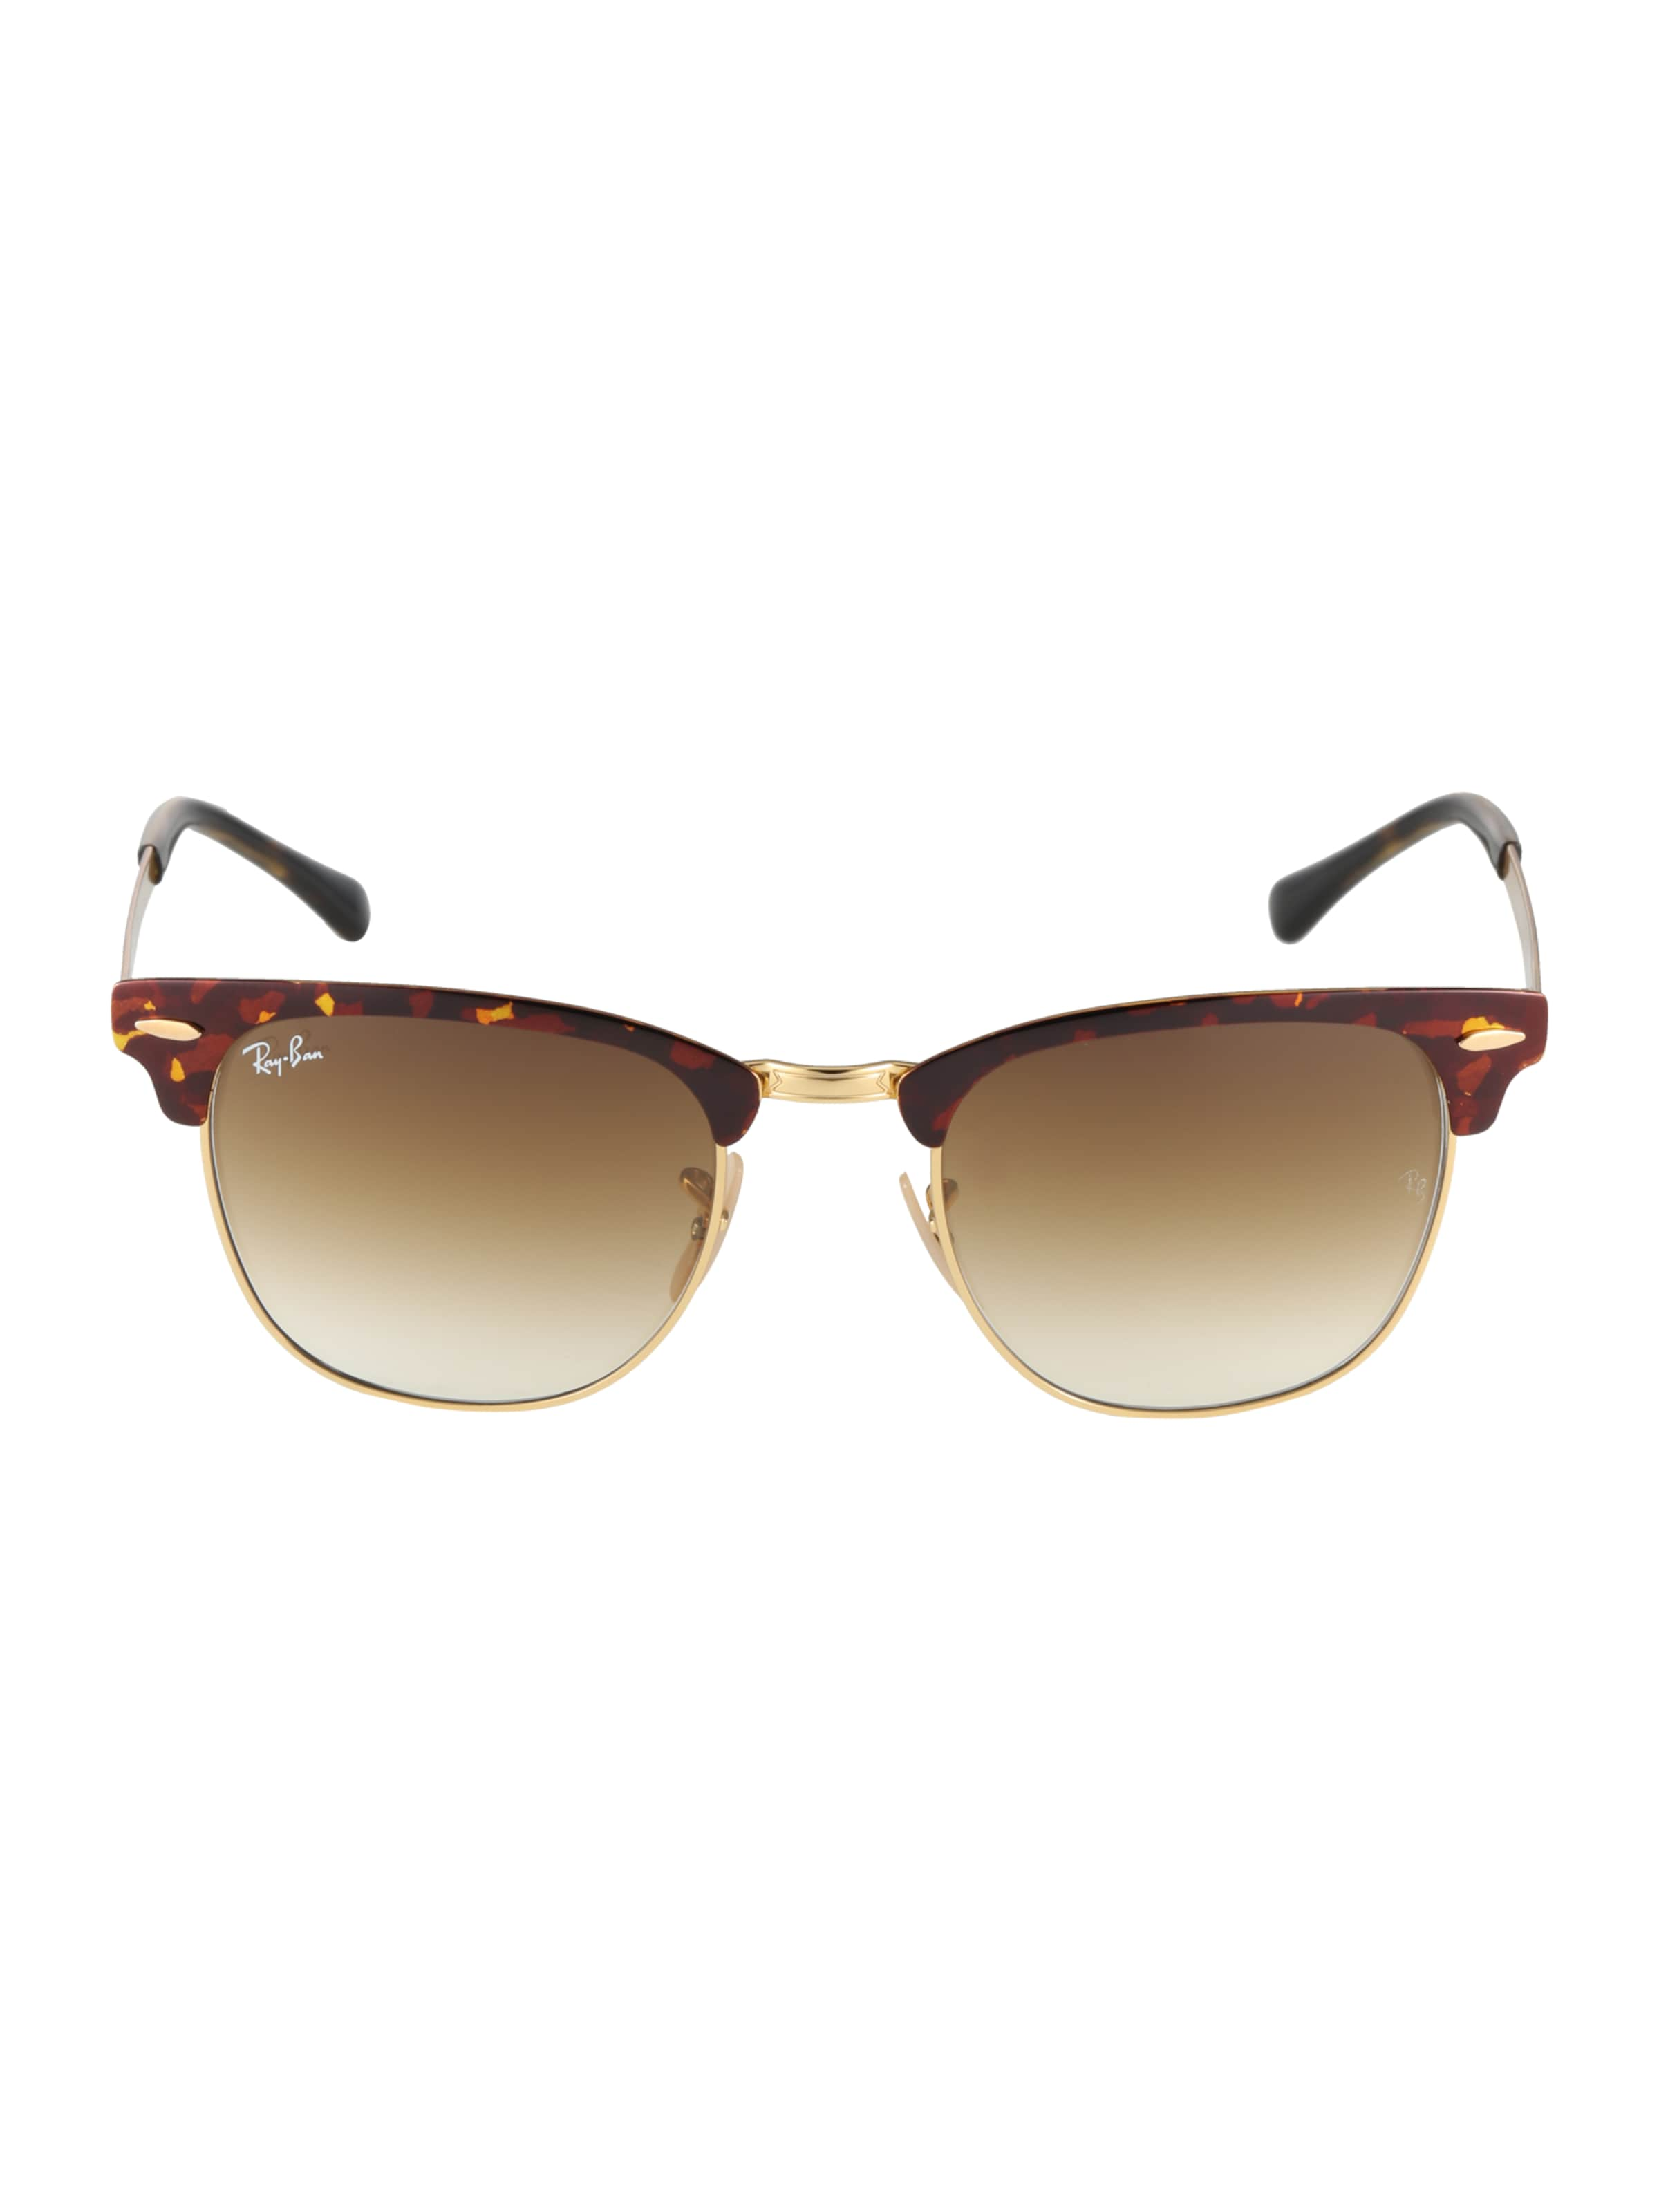 Sonnenbrille 'rb3716' Ray In ban BraunGold QtdCsBhrx